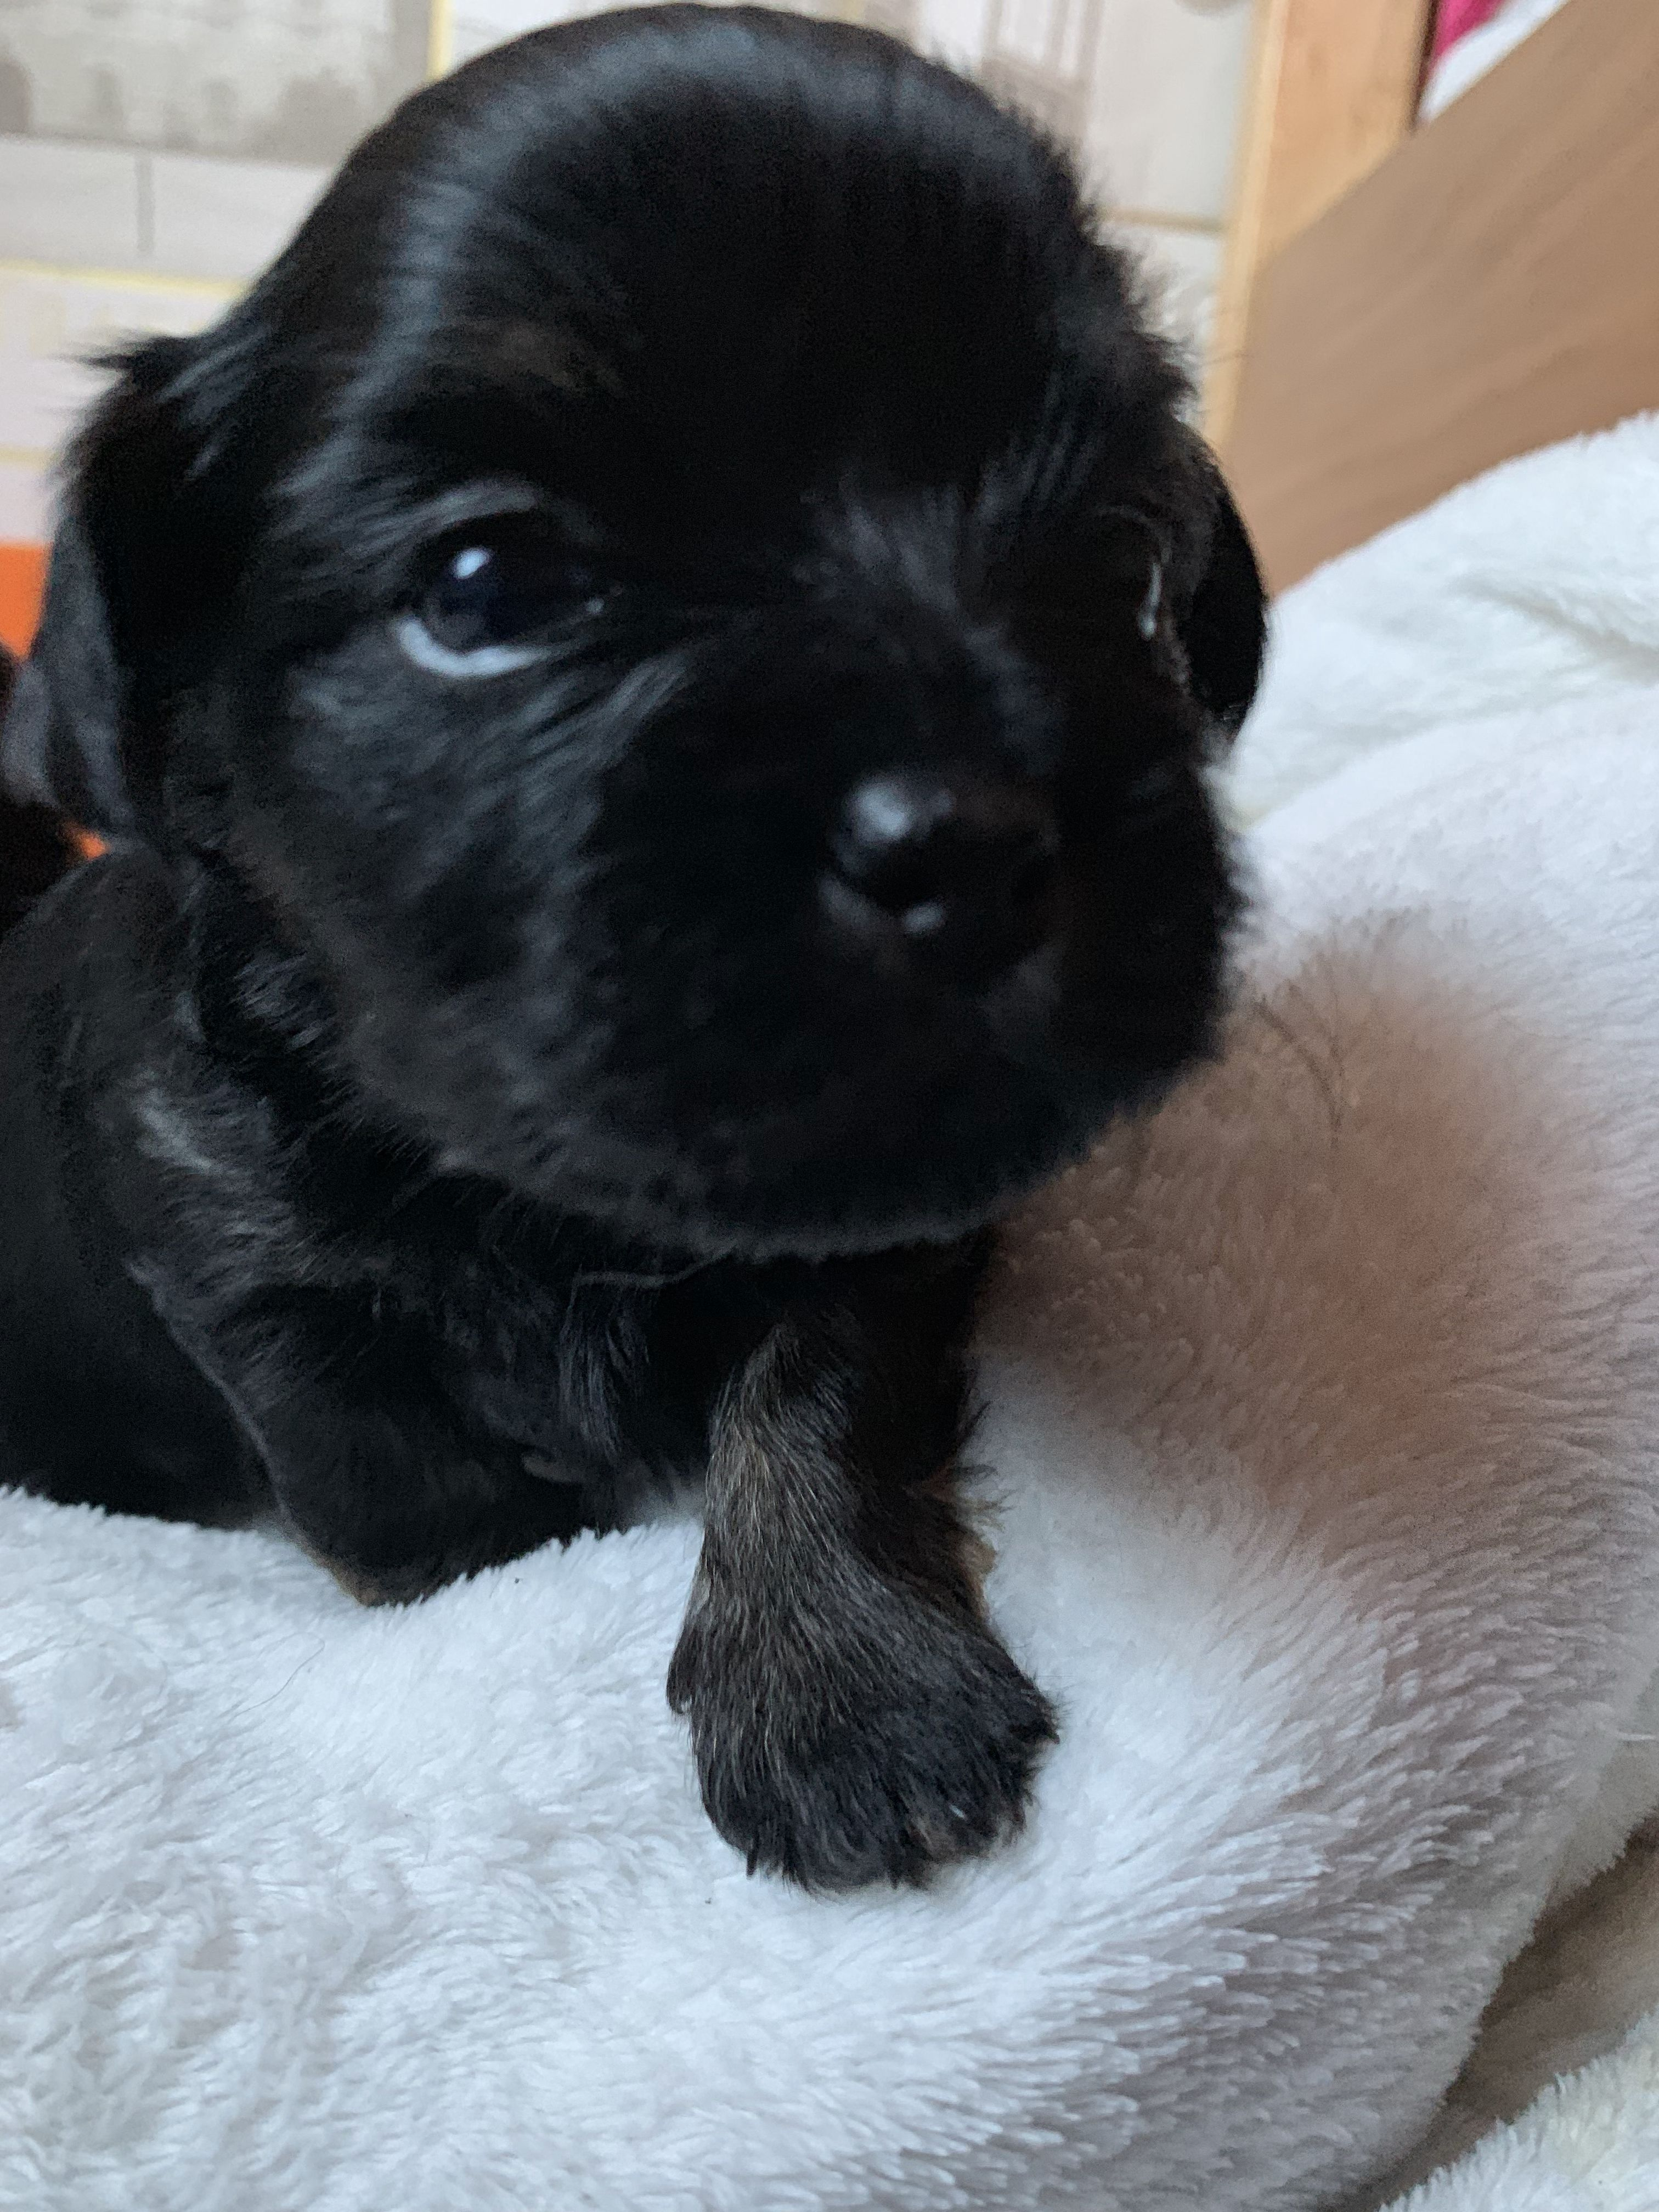 Baby Puppy S Shihtzu Chihuahua X Cute Puppy Adorable Pup